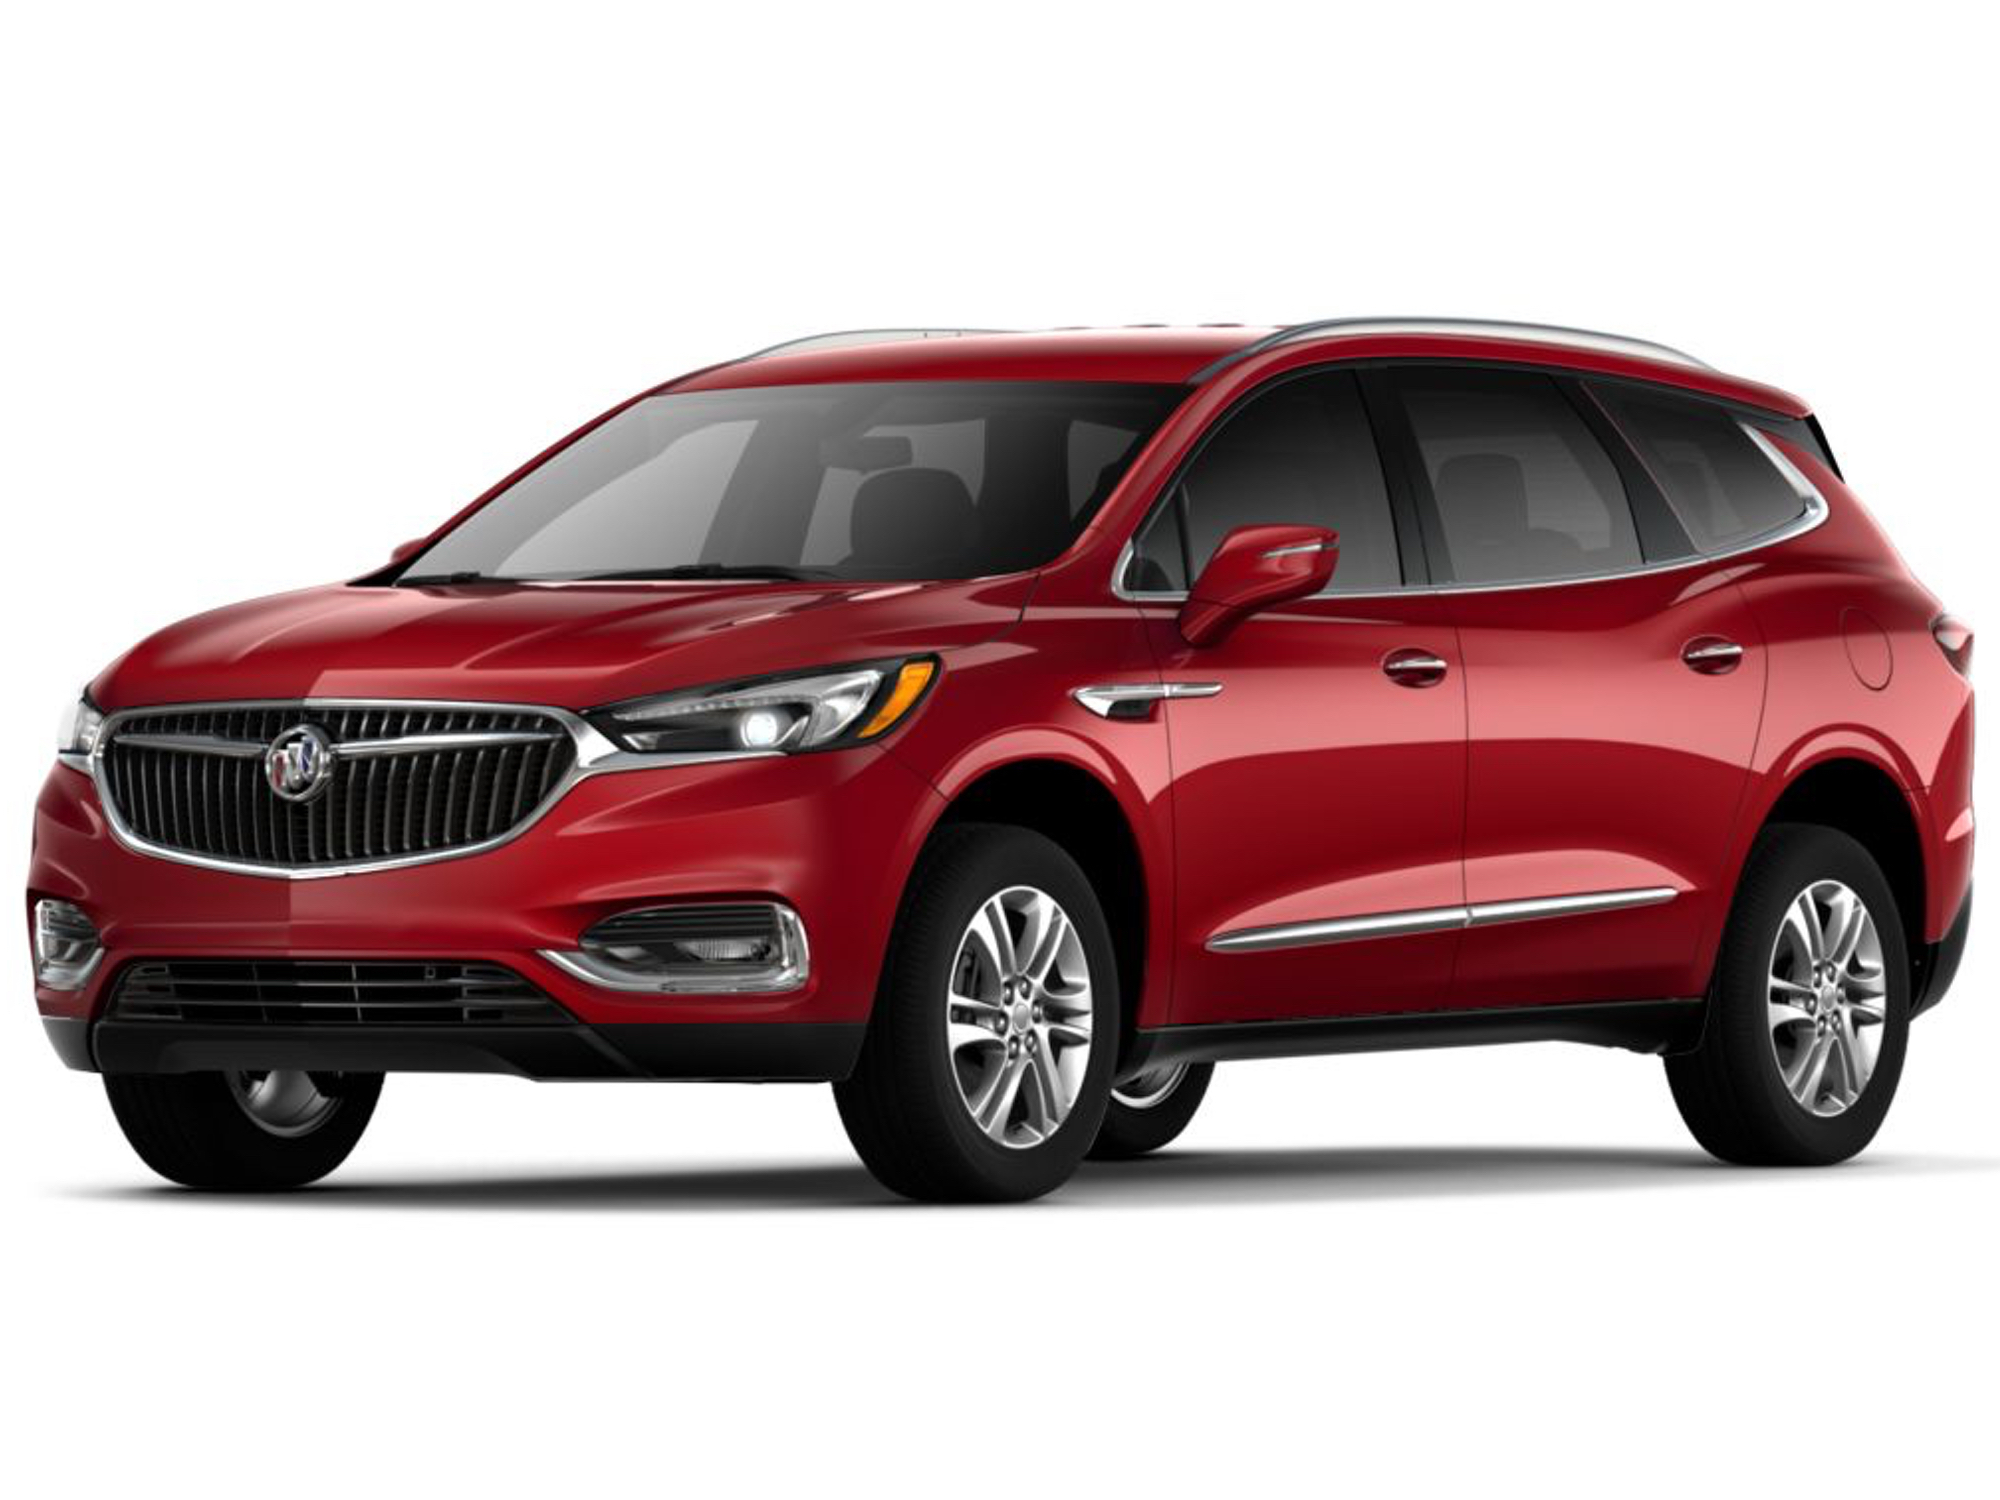 2019 Buick Enclave Exterior Colors | Gm Authority 2022 Buick Enclave Avenir Exterior Colors, Interior, Awd